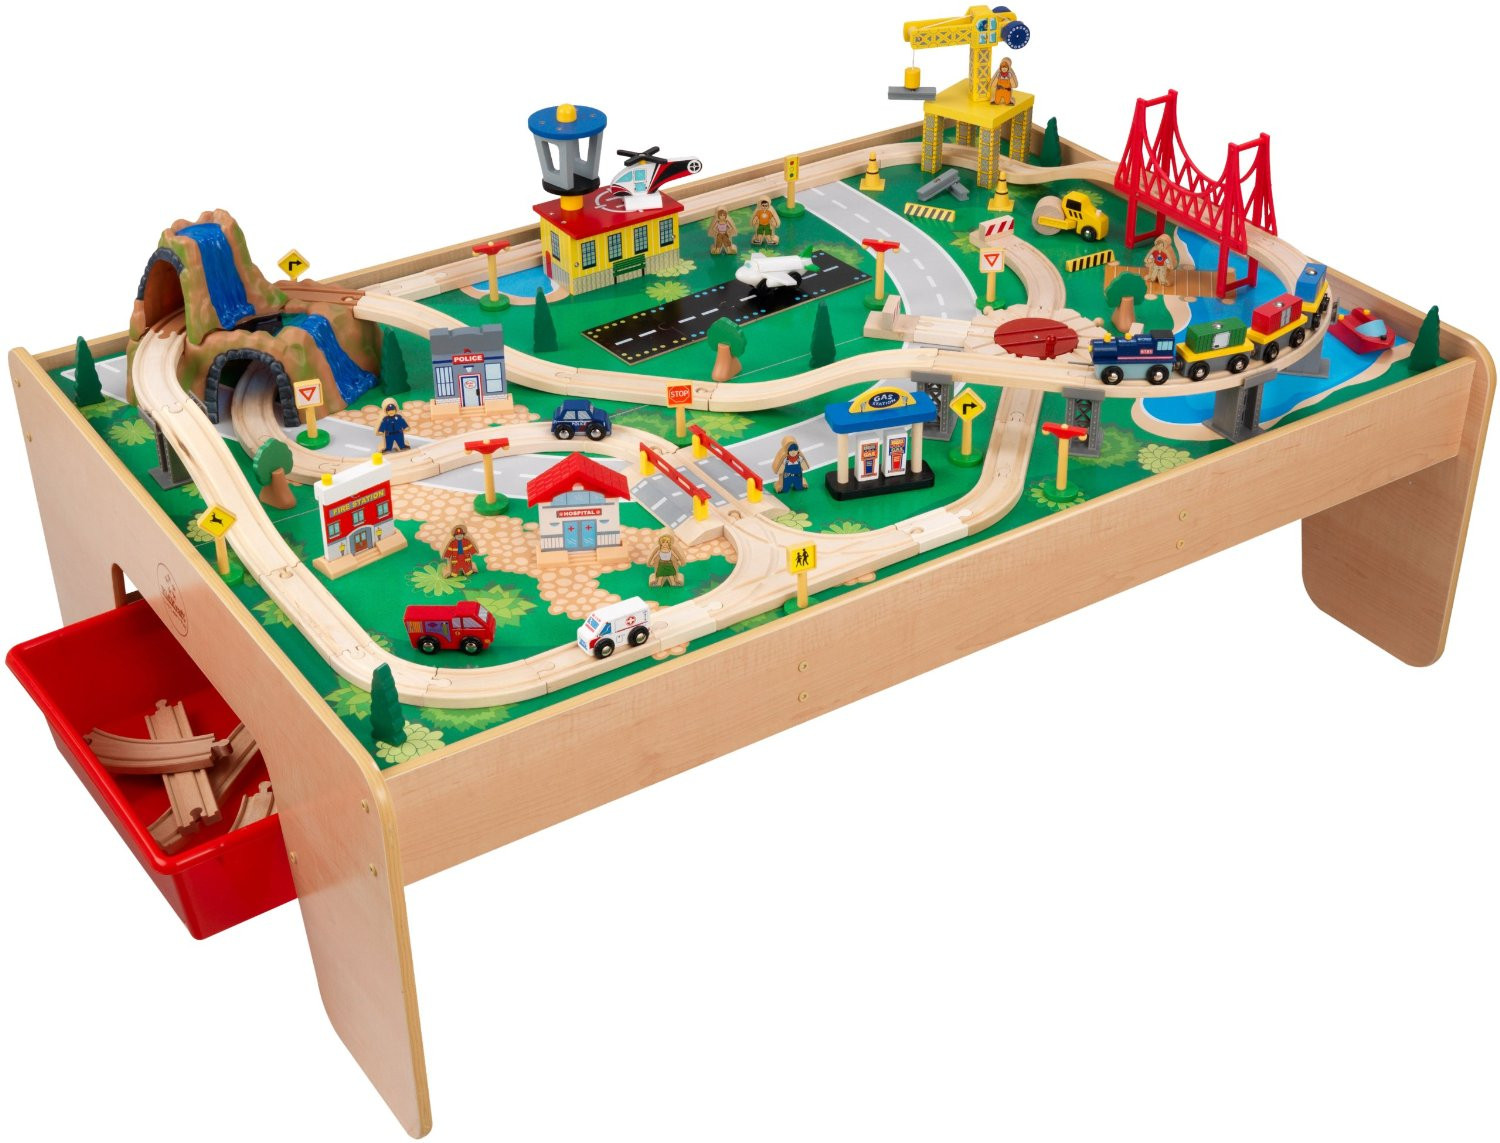 Best Kids Table  Best Train Sets For Kids What Are The Options